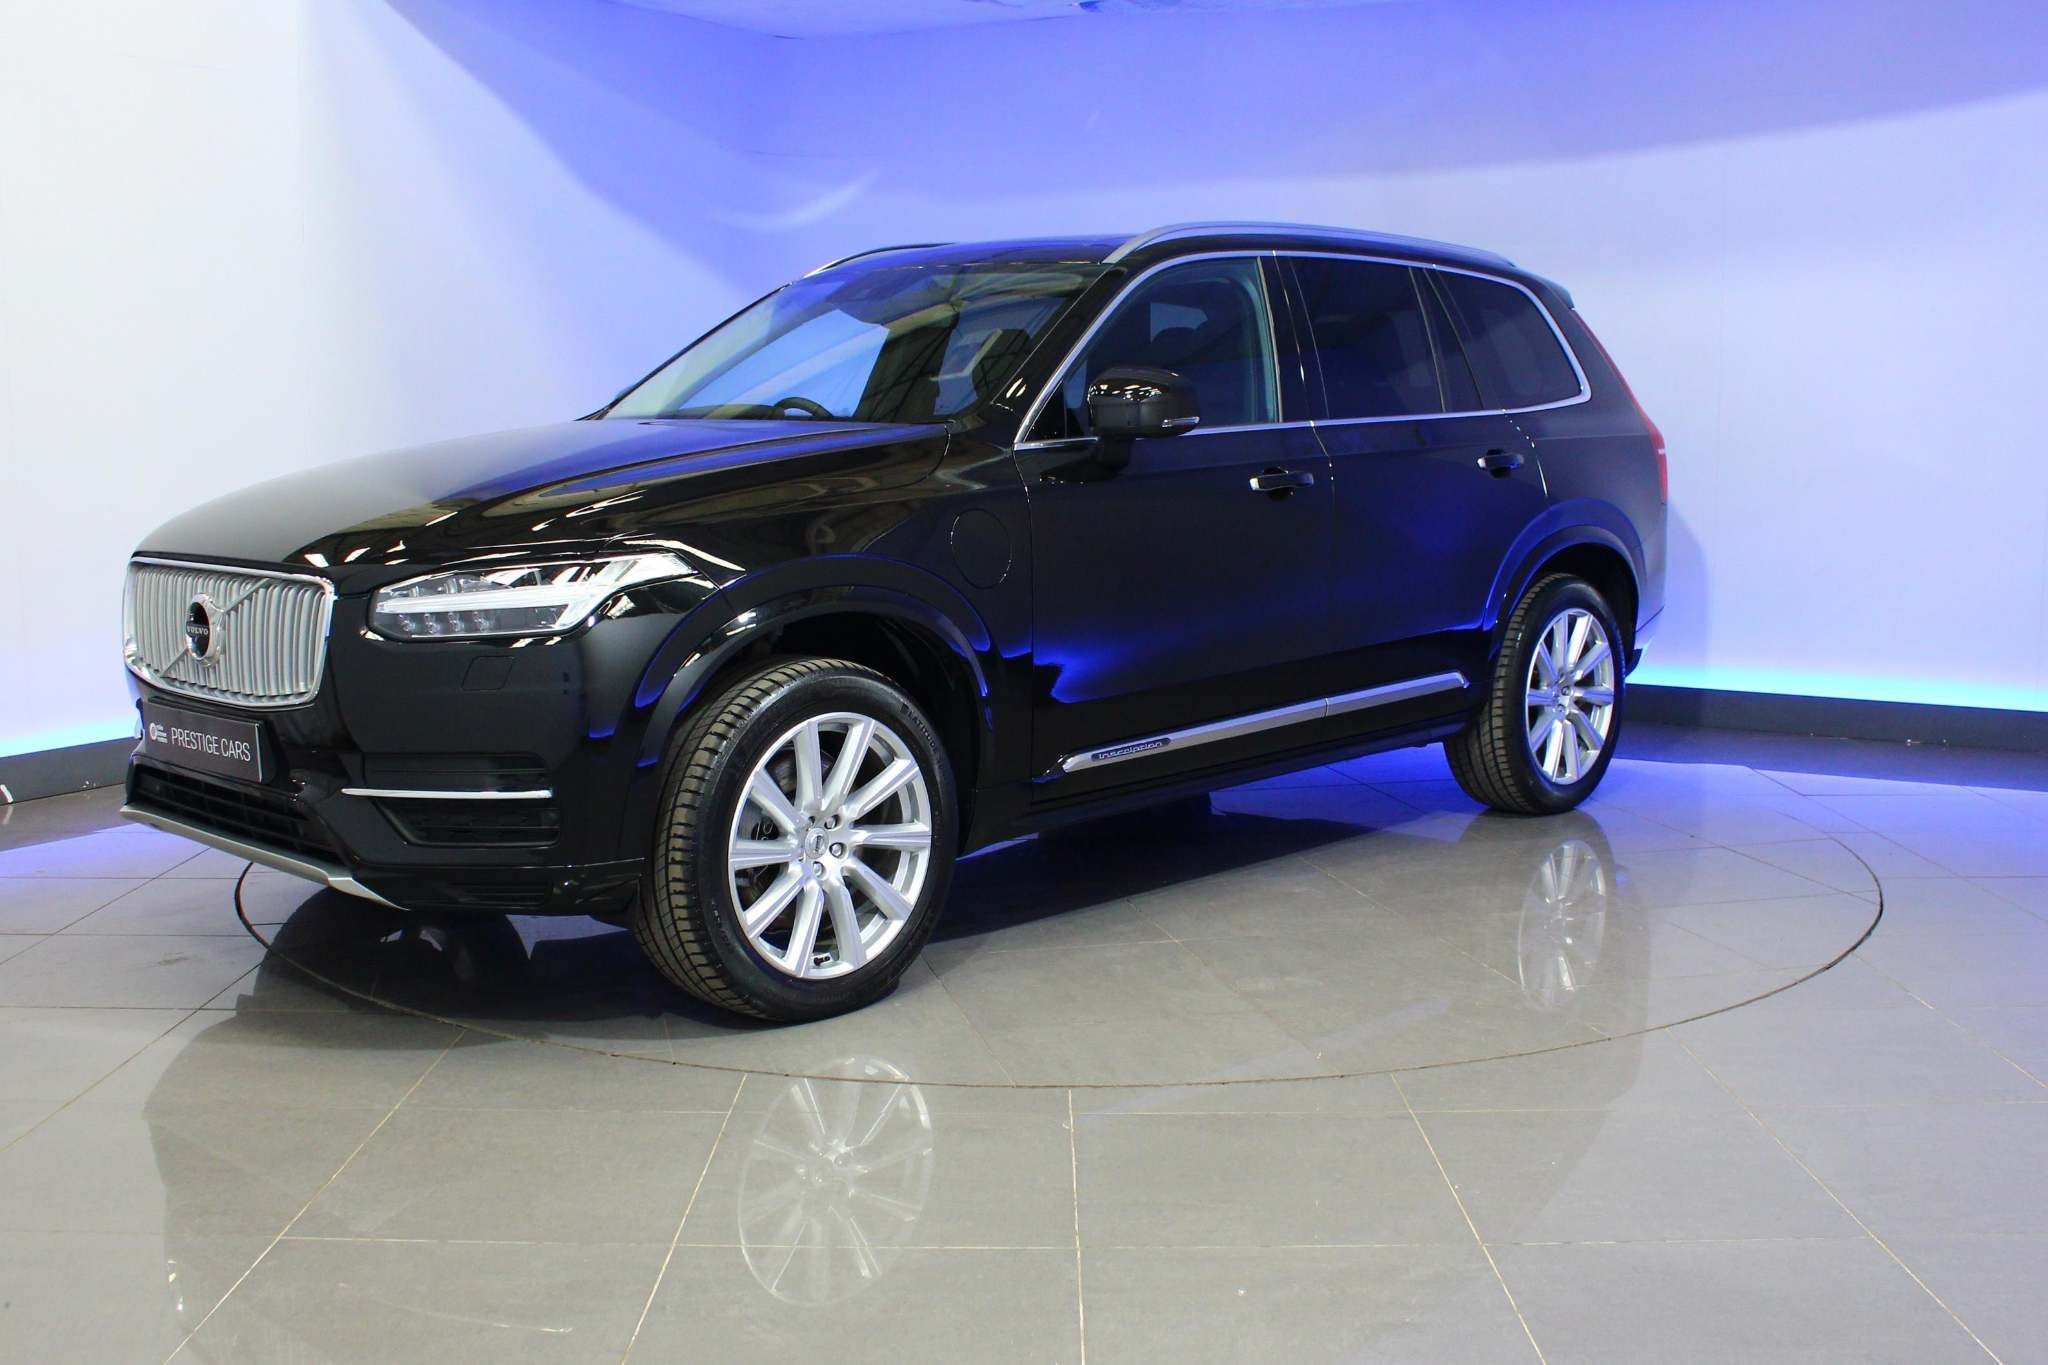 Used Volvo XC90 2.0h T8 Twin Engine 10.4kwh Inscription Auto 4wd (s/s) 5dr